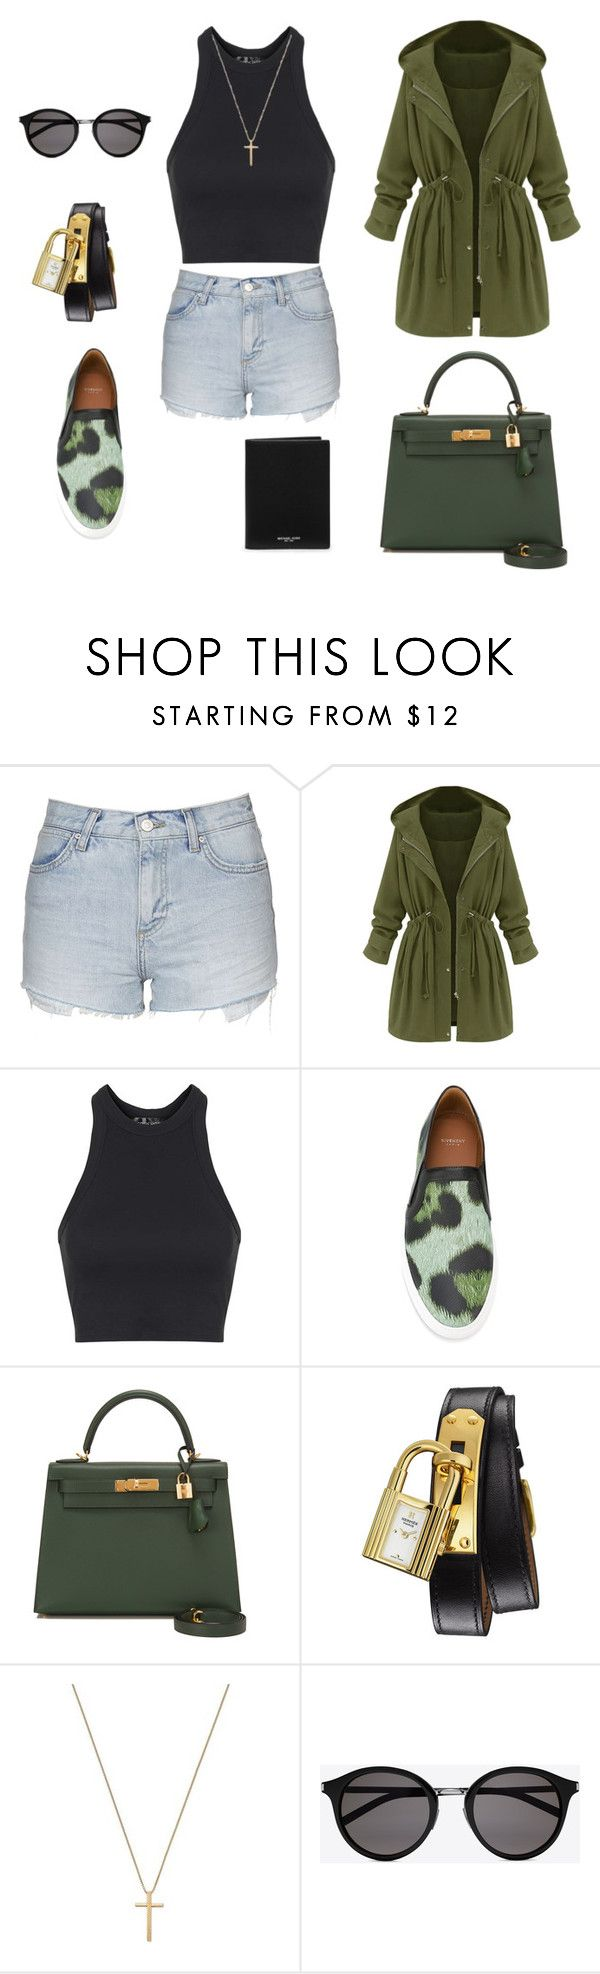 """Untitled #284"" by nadiralorencia on Polyvore featuring Topshop, Givenchy, Hermès, Gucci, Yves Saint Laurent, Michael Kors, women's clothing, women, female and woman"